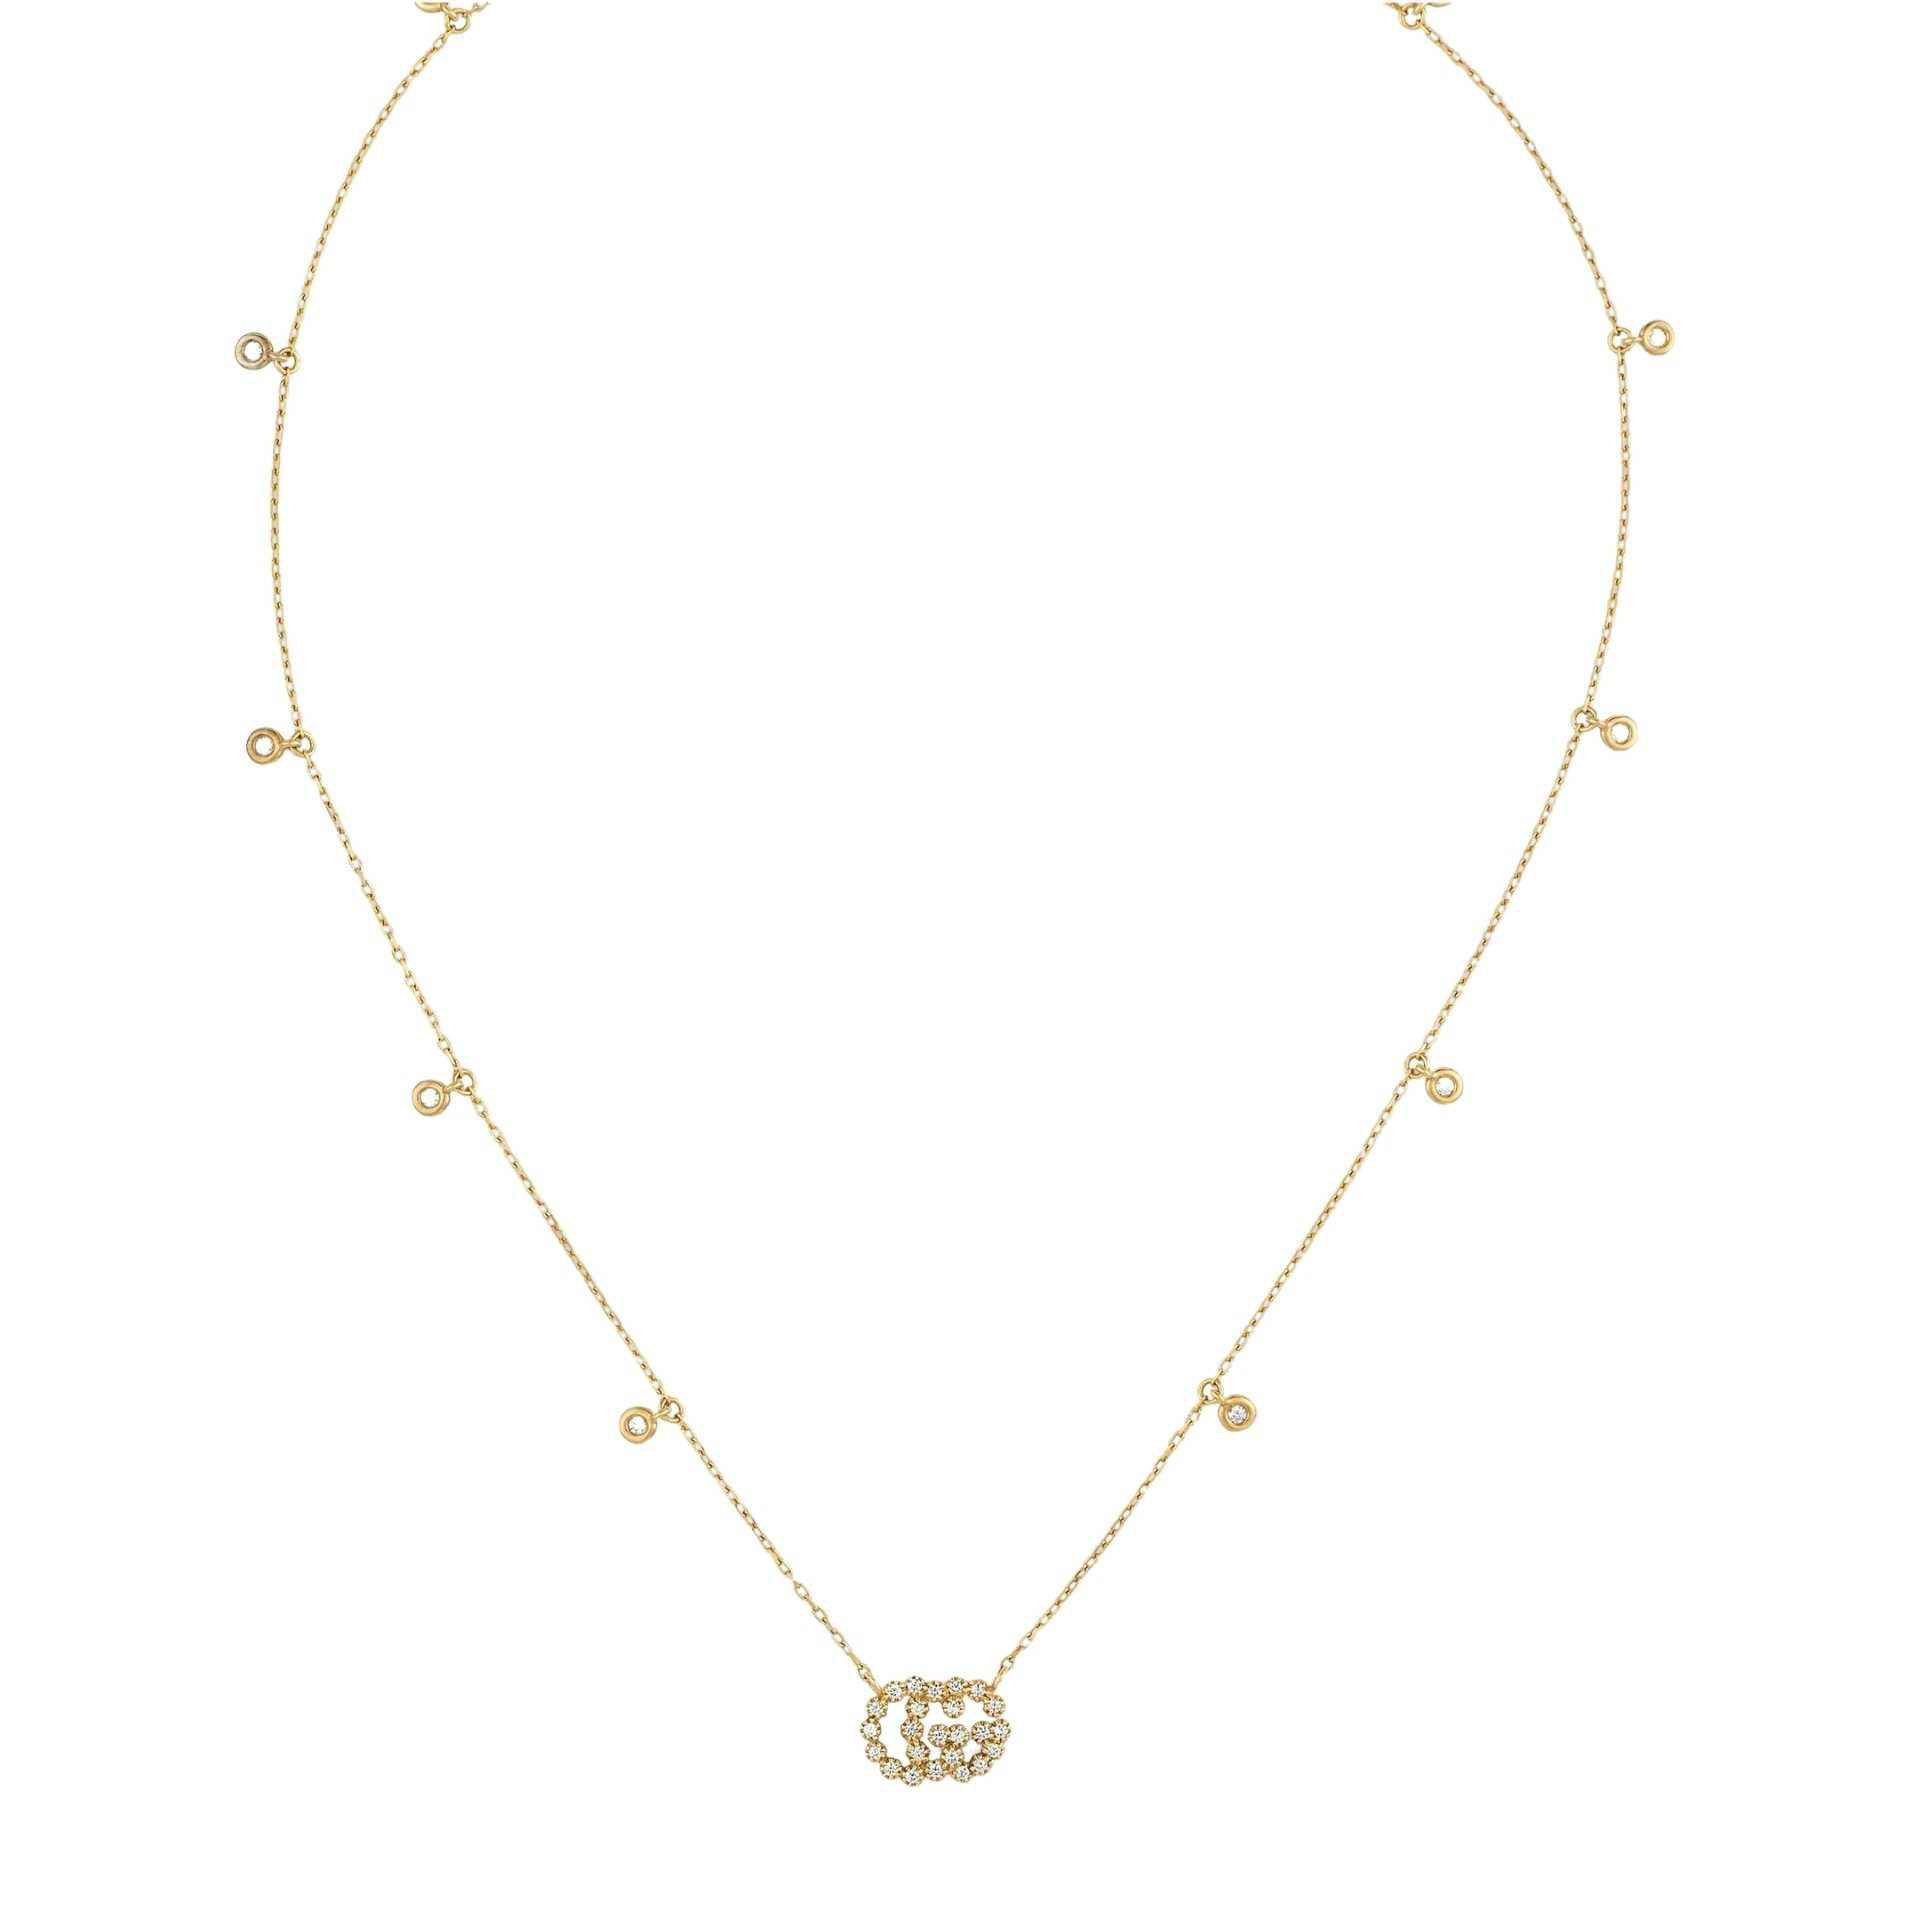 Gucci GG Running Necklace in 18k Yellow Gold with Diamonds - Orsini Jewellers NZ